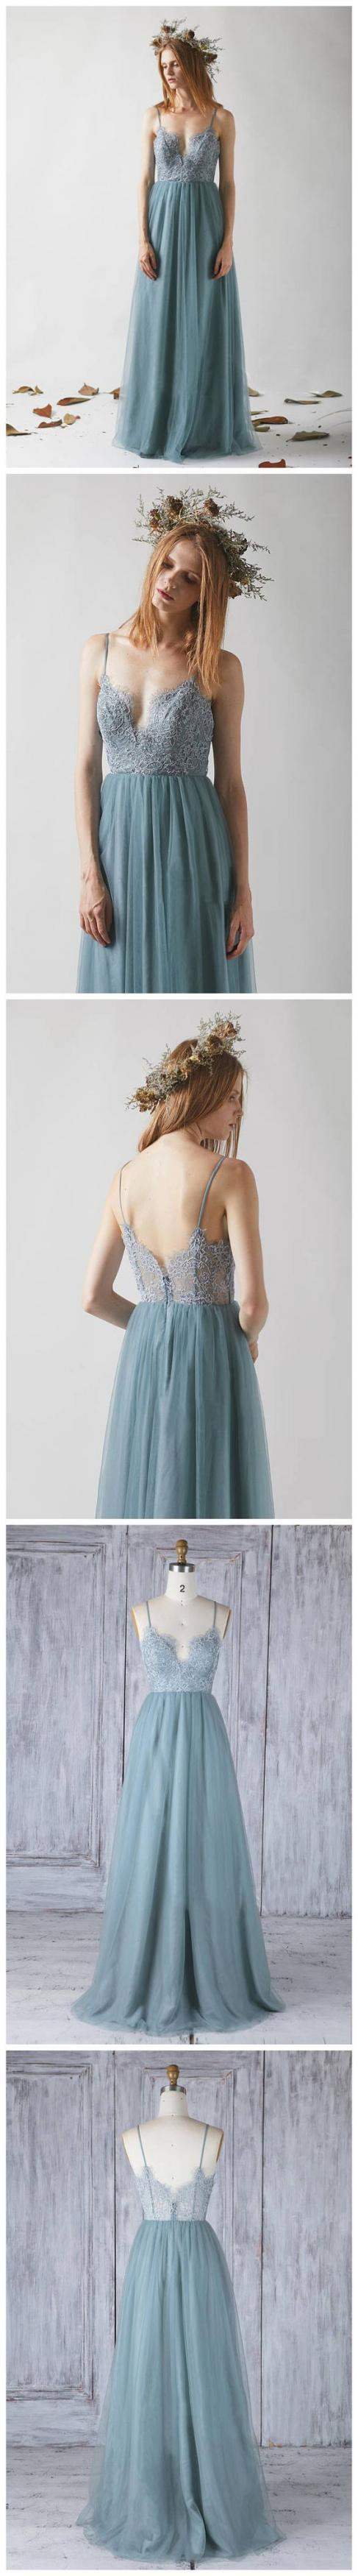 Sexy Evening Dress, A Line Prom Dress,lace Long Party Dress